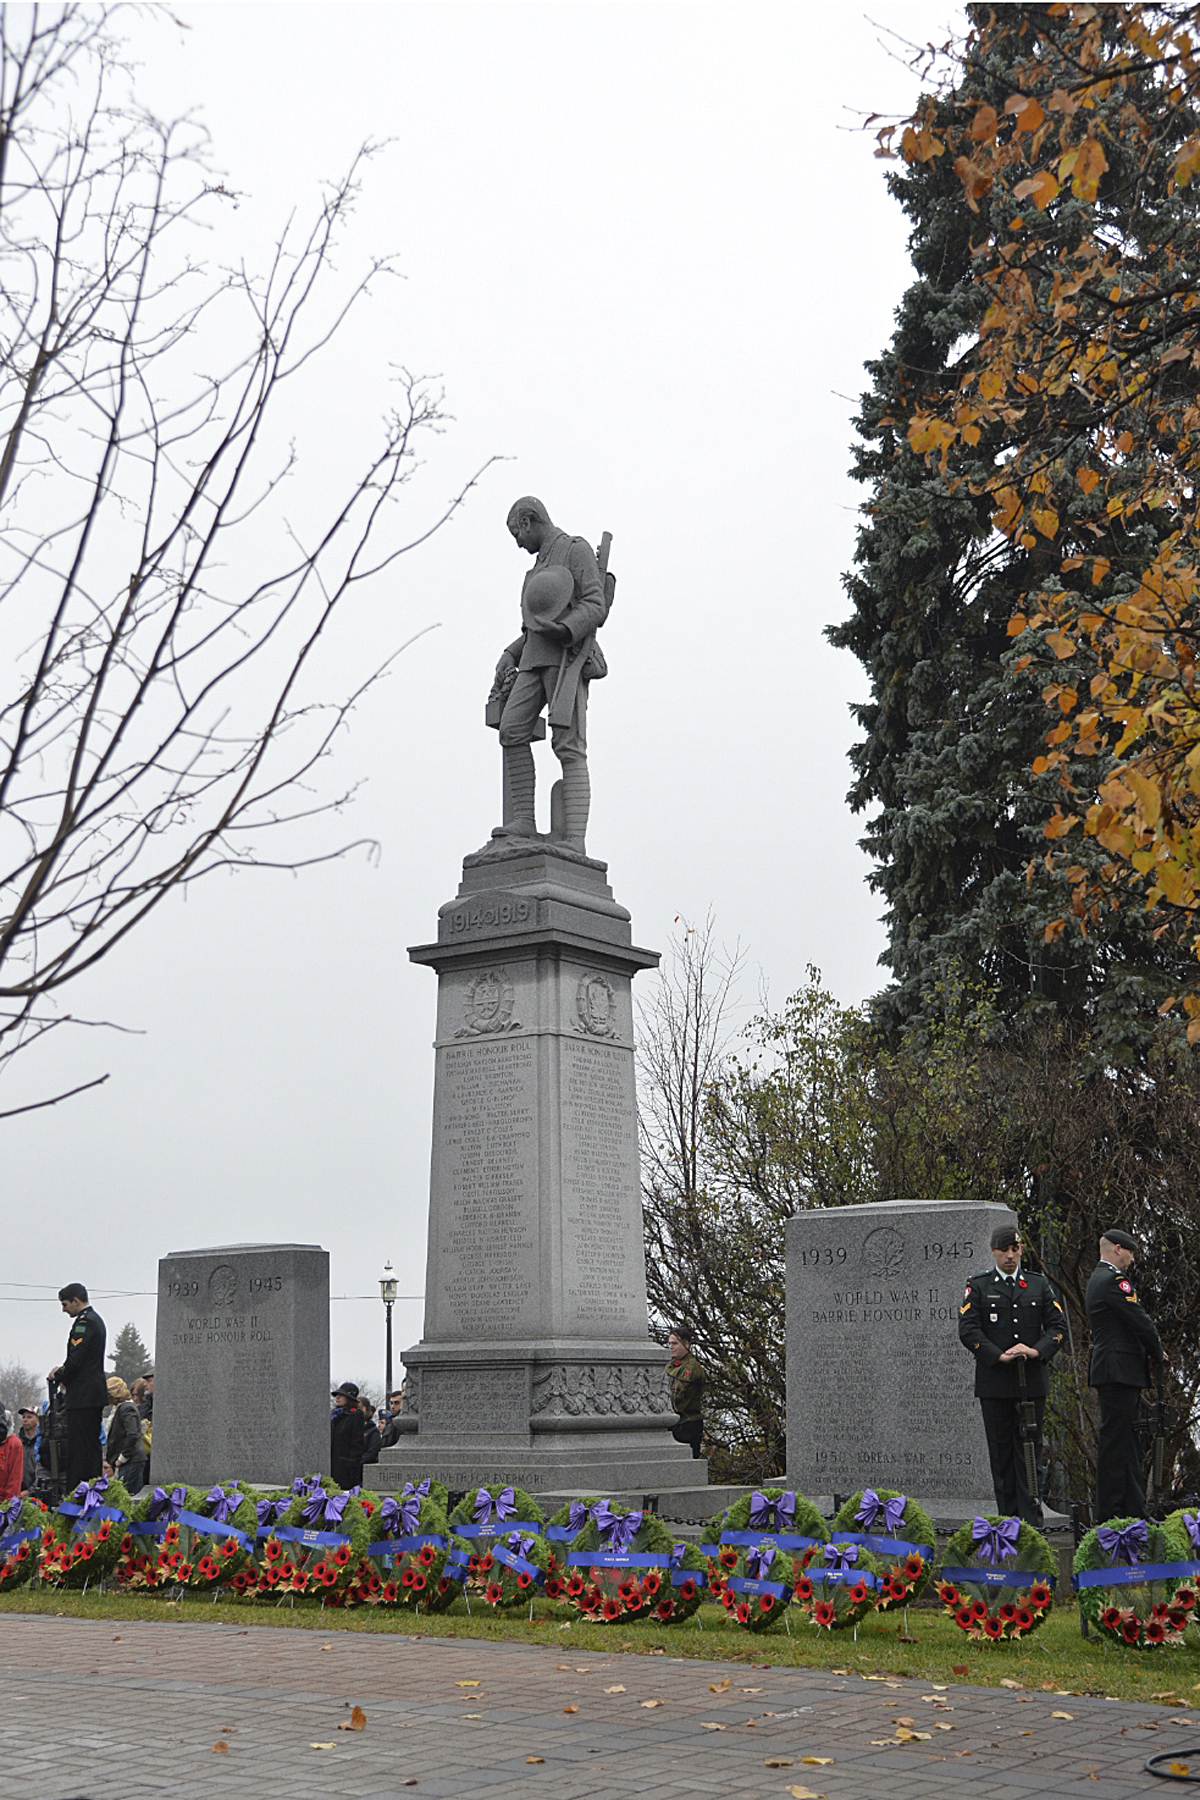 Members of the Grey and Simcoe Foresters stand sentry at the cenotaph in Barrie, Ontario, during the 16 Wing Borden Remembrance Day ceremony on November 11, 2015. PHOTO: Master Corporal Miranda Langguth